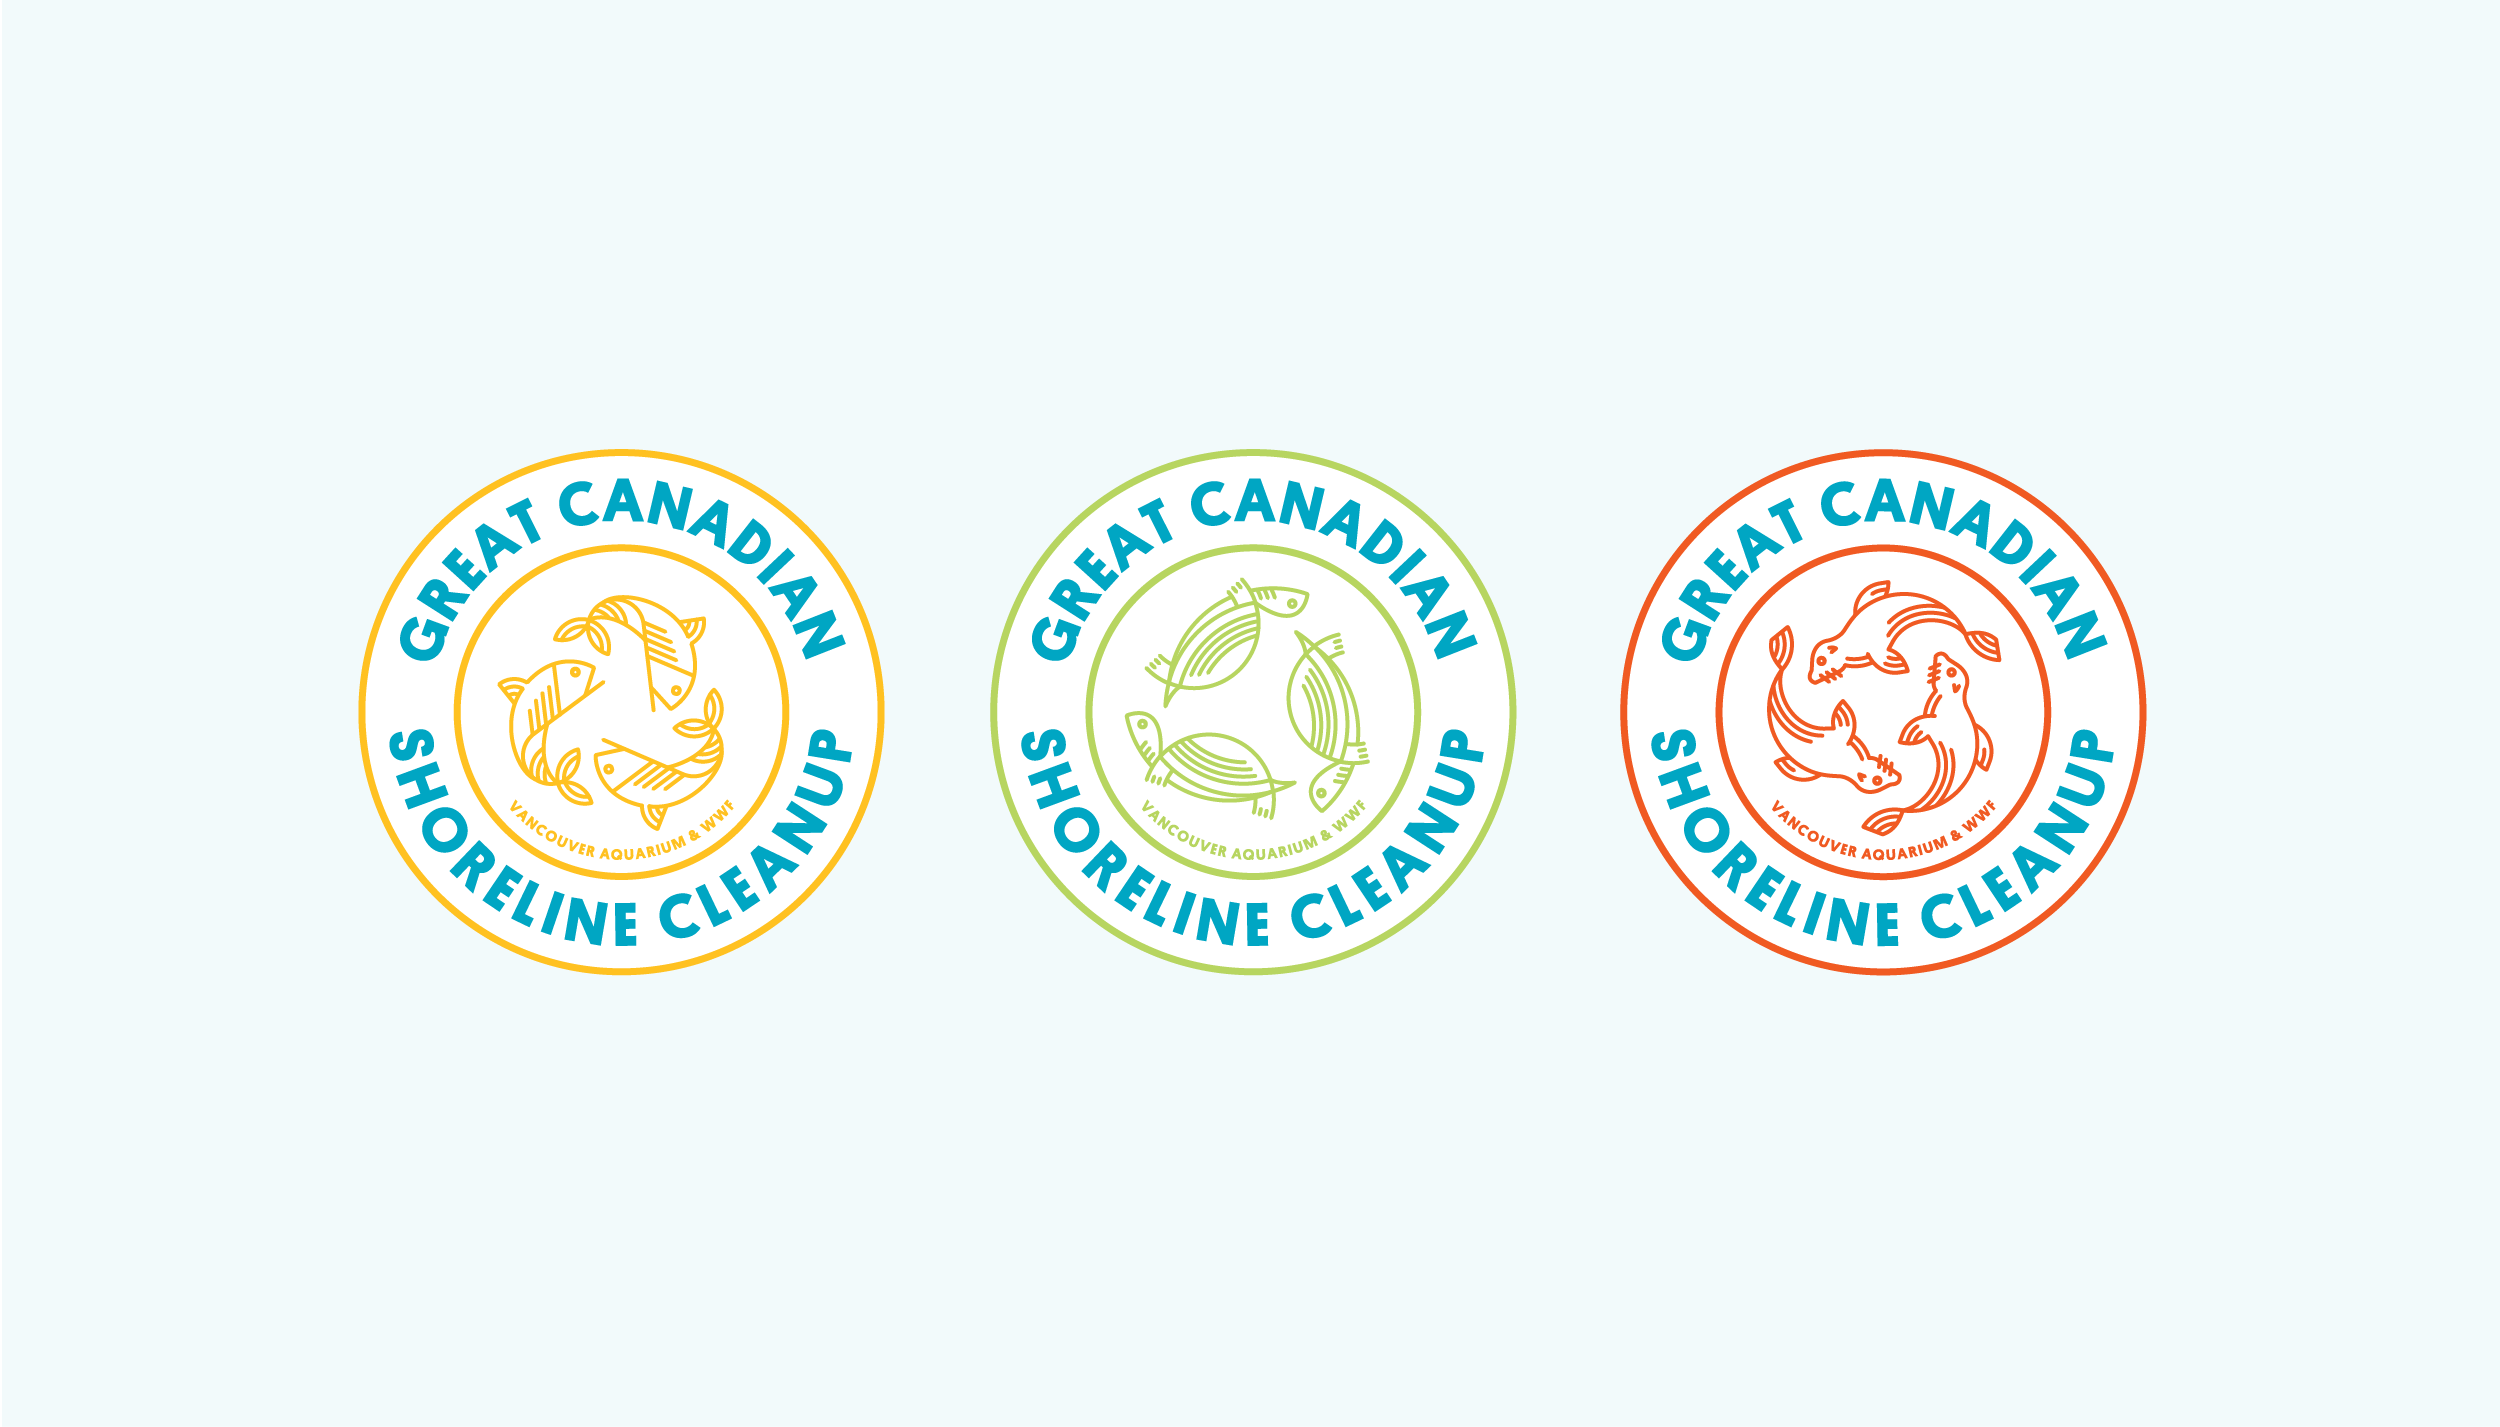 Referencing a seal of approval, this concept presents a logo variation for each category of species affected. The infinity notion speaks to the on-going 'reduce re-use recycle'process.